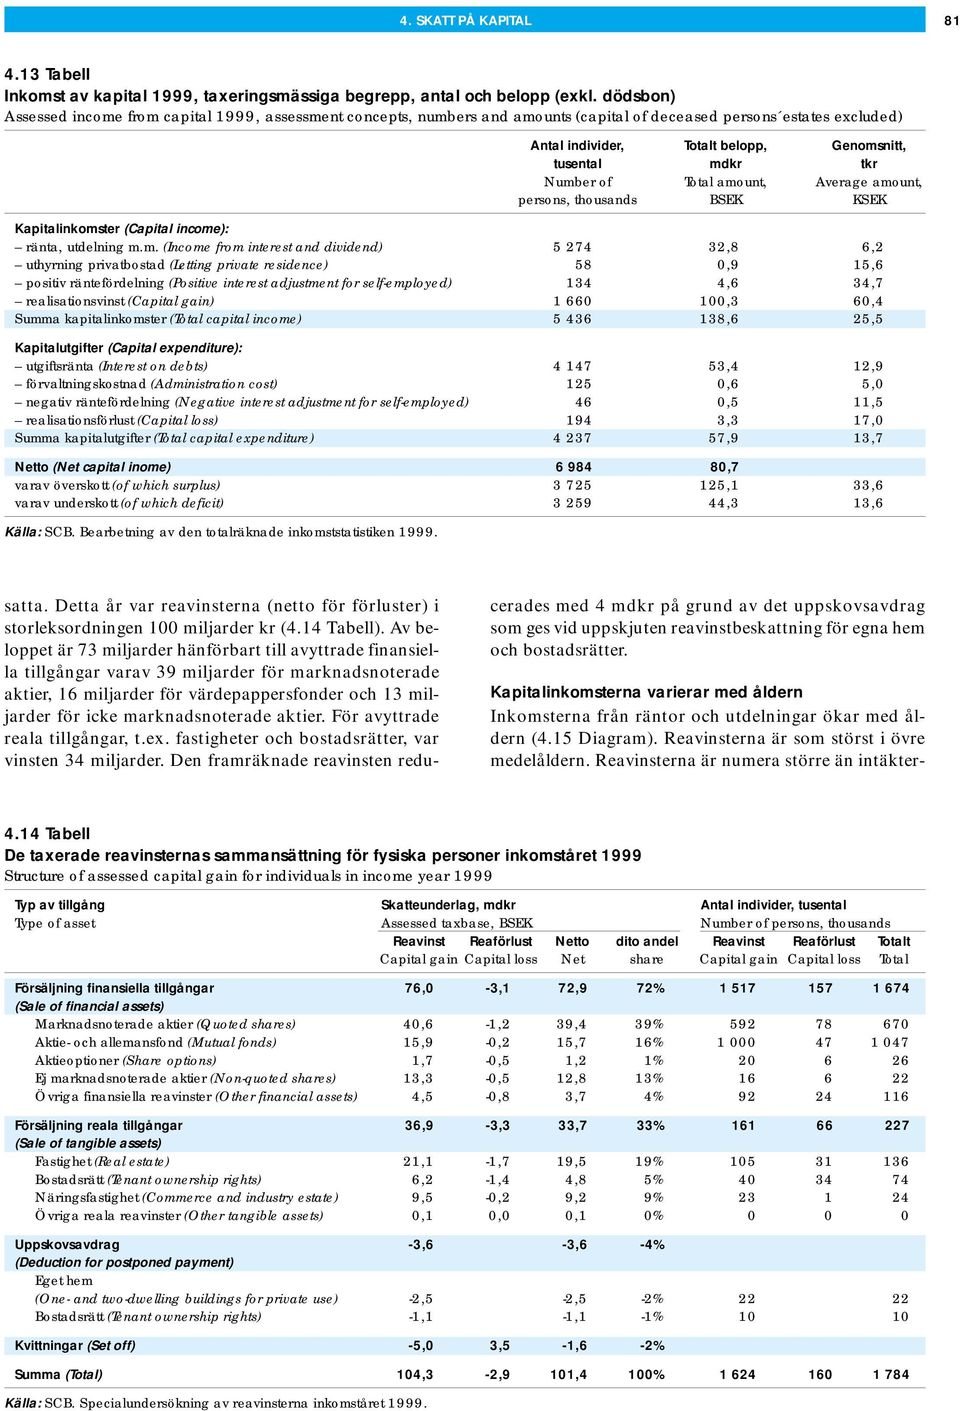 Number of Total amount, Average amount, persons, thousands BSEK KSEK Kapitalinkomster (Capital income): ränta, utdelning m.m. (Income from interest and dividend) 5 274 32,8 6,2 uthyrning privatbostad